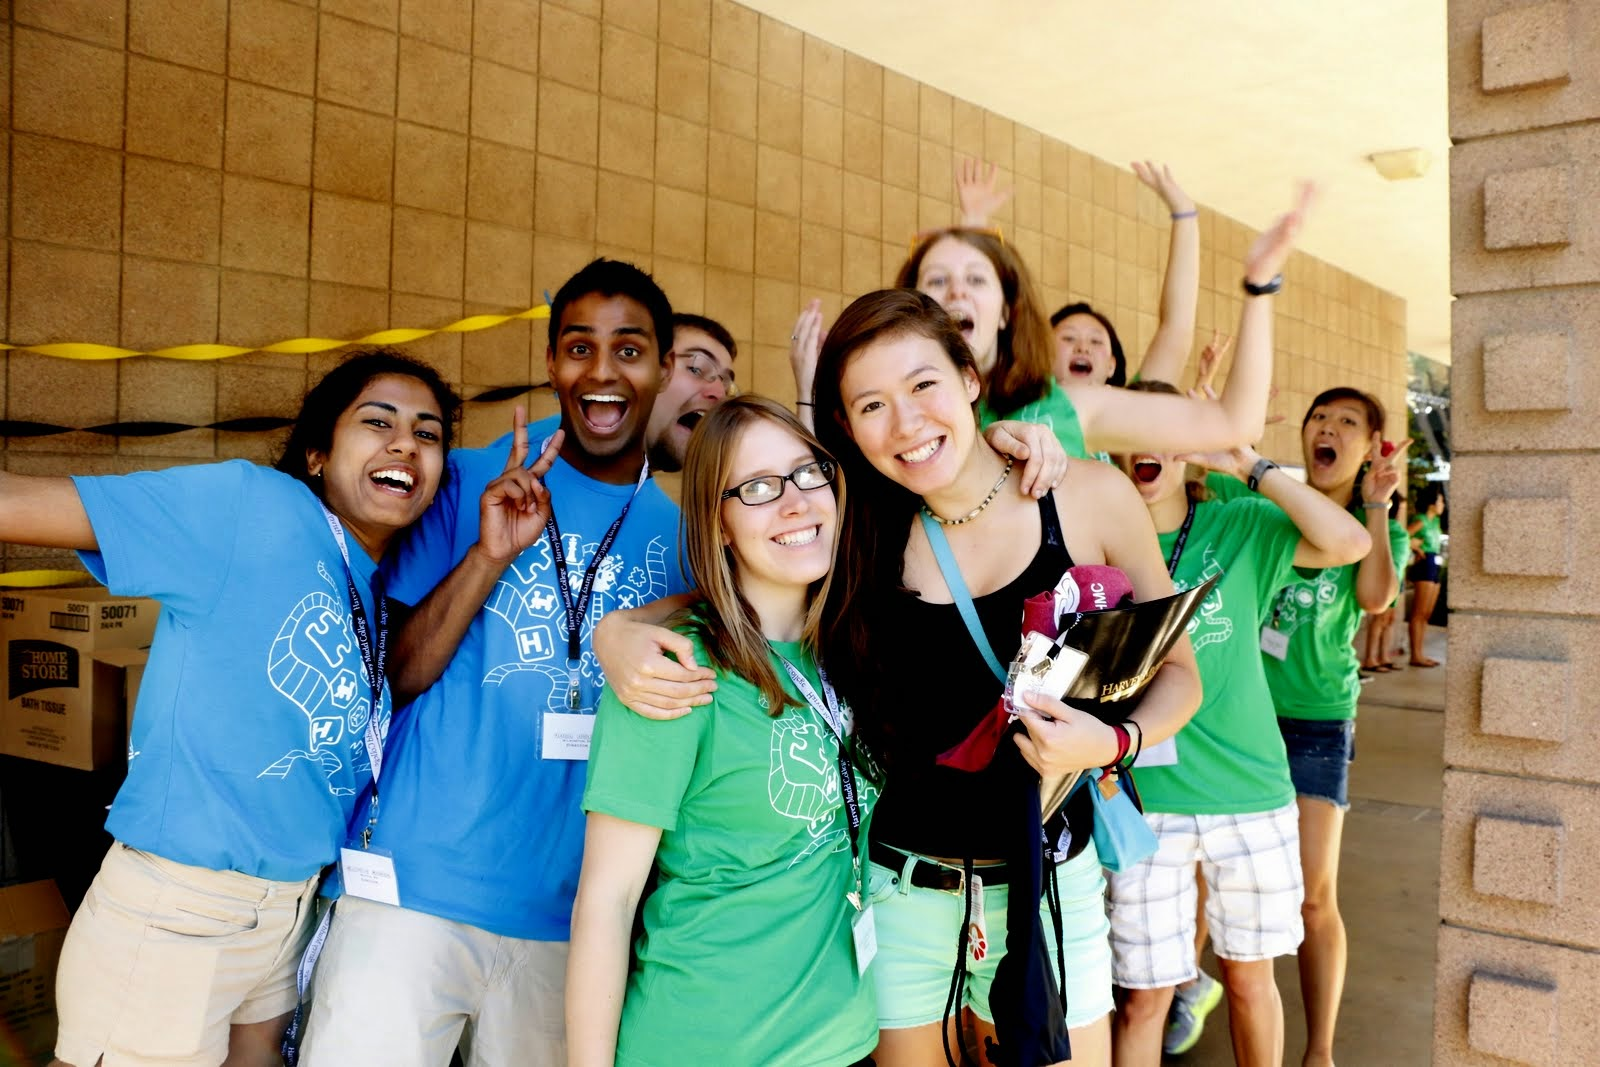 Orientation students smiling and waving.